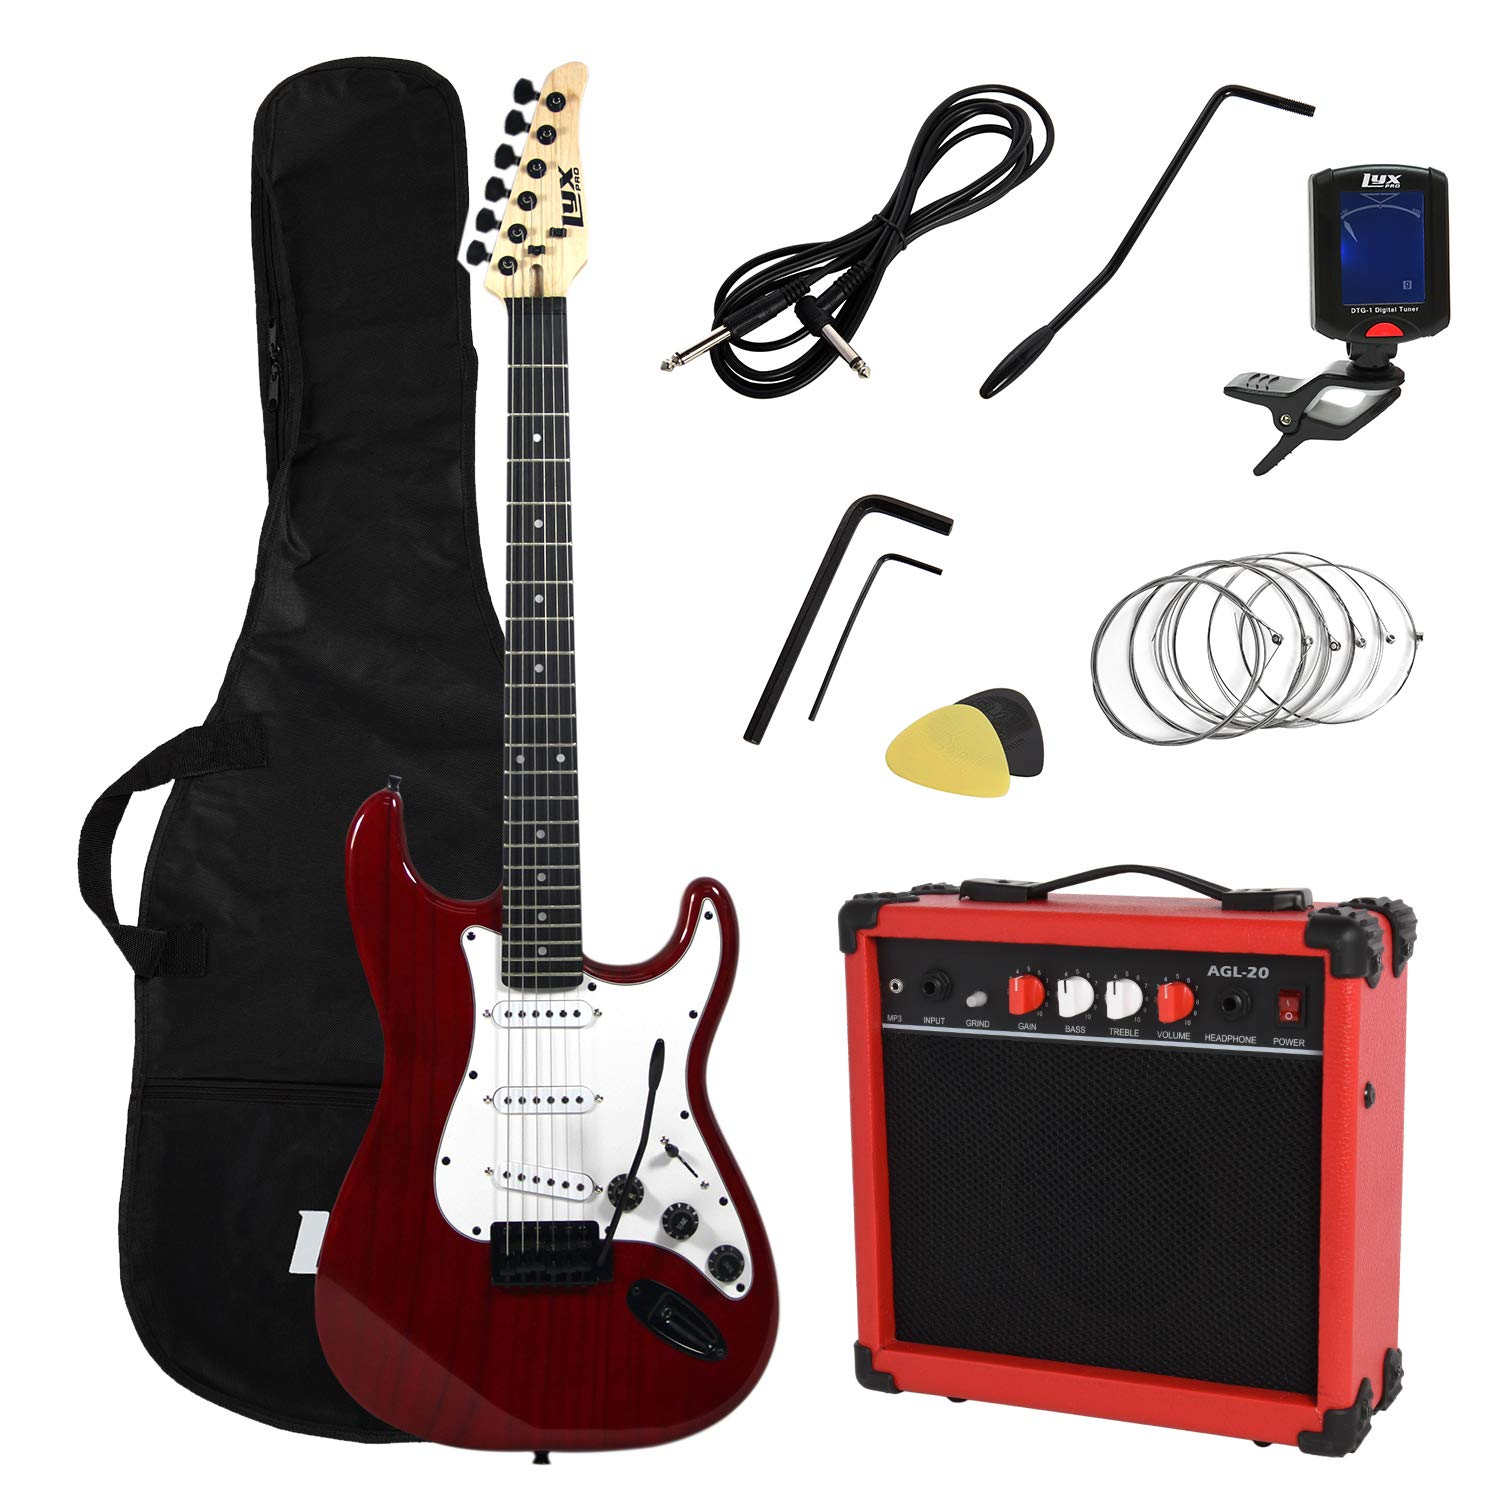 LyxPro 39'' inch Electric Guitar with 20w Amp, Package Includes All Accessories, Digital Tuner, Strings, Picks, Tremolo Bar, Shoulder Strap, and Case Bag Complete Beginner Starter kit Pack Full Size